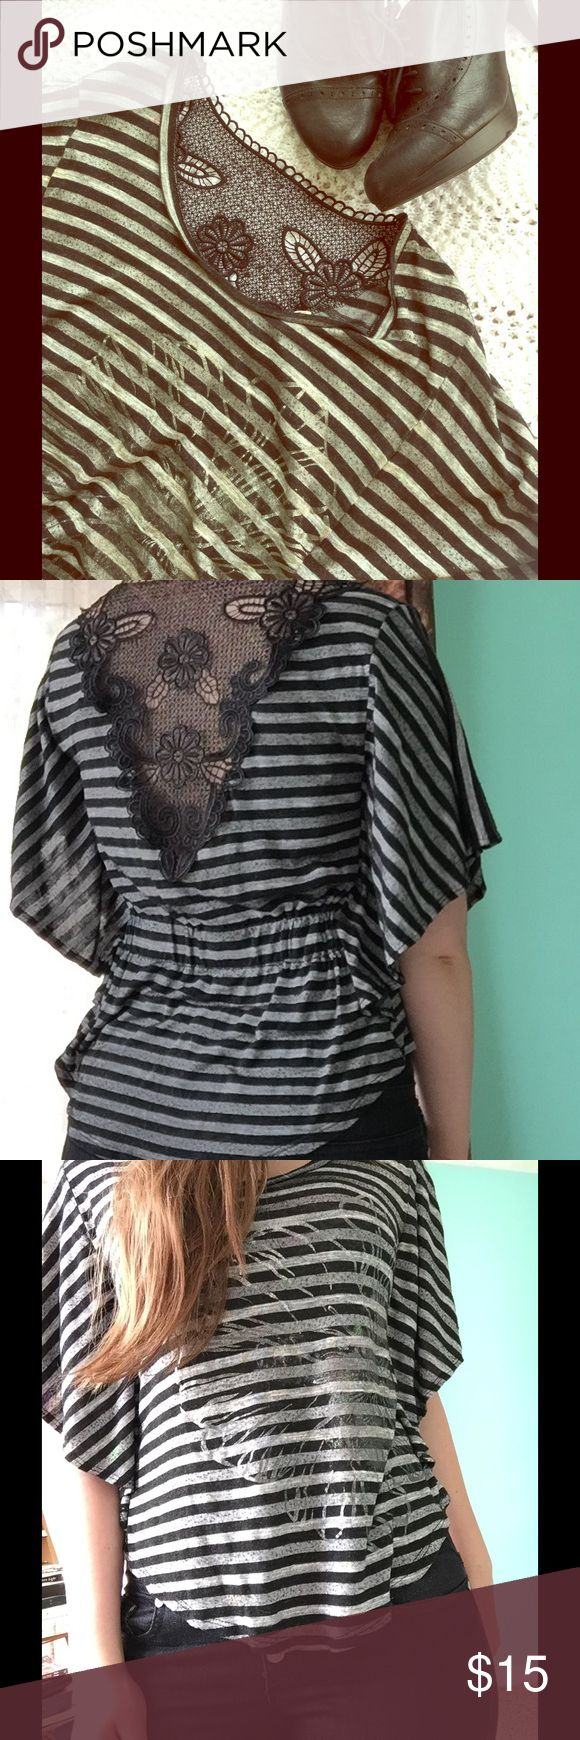 Striped Batwing Flower Shirt Chic black & gray striped batwing shirt with silver flower on front and beautiful lace back. Back is also gathered with elastic. Used but in near perfect condition, only flaw is a very small, barely noticeable pink spot near right side of collar (visible in first pic). Size M. Urban Episode Tops